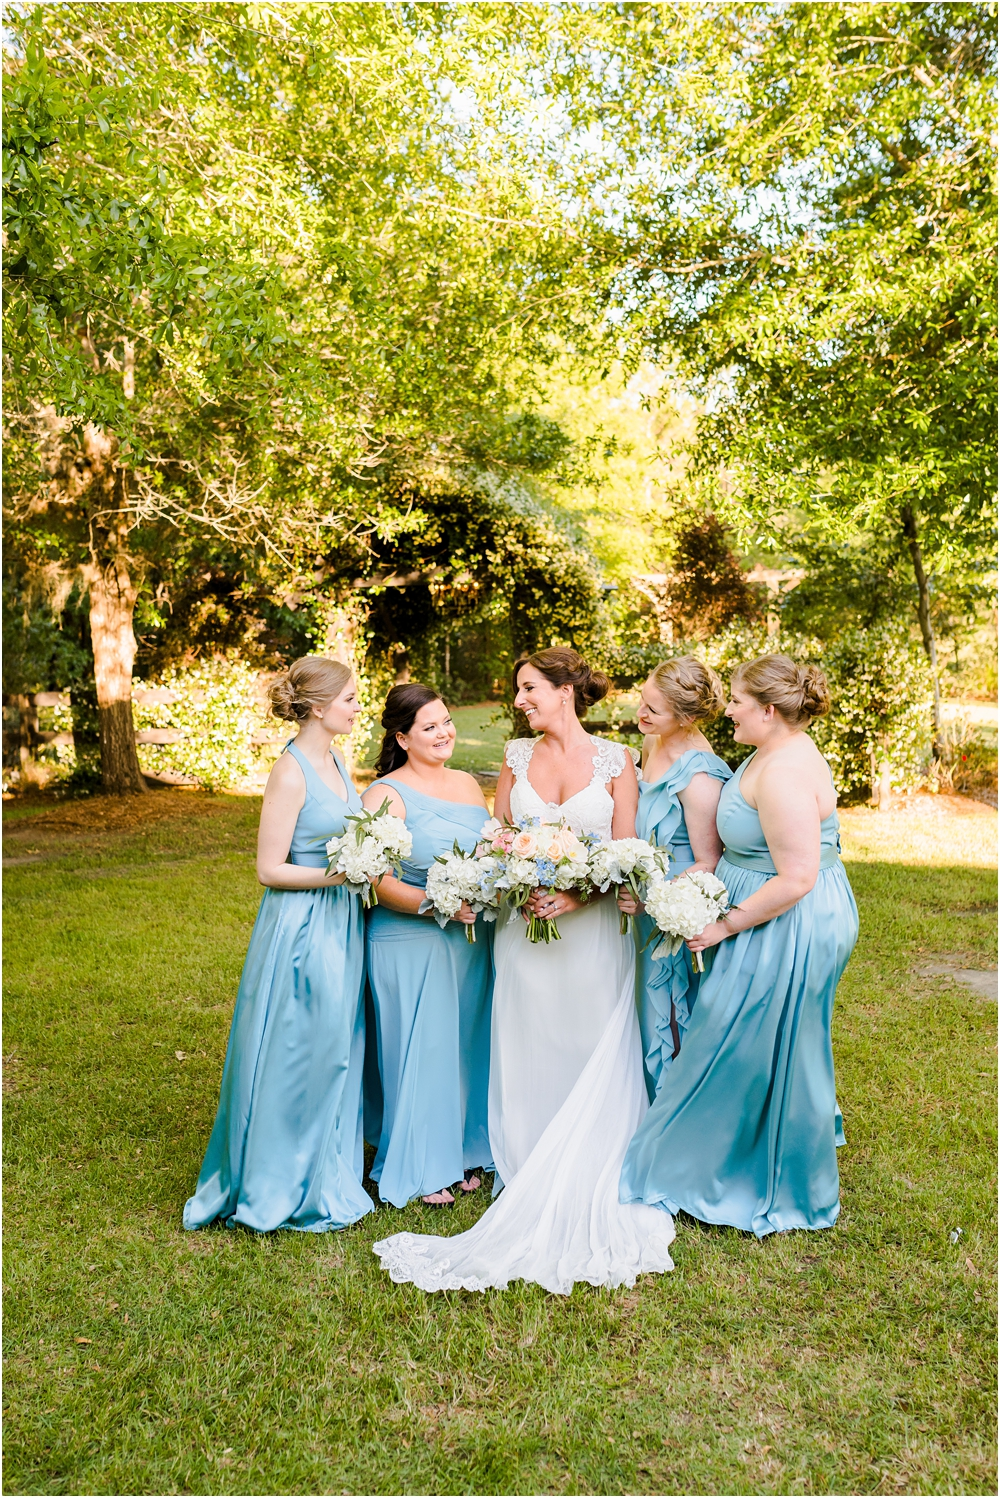 king-southern-lea-farms-vernon-florida-wedding-kiersten-stevenson-photography-(279-of-578).JPG